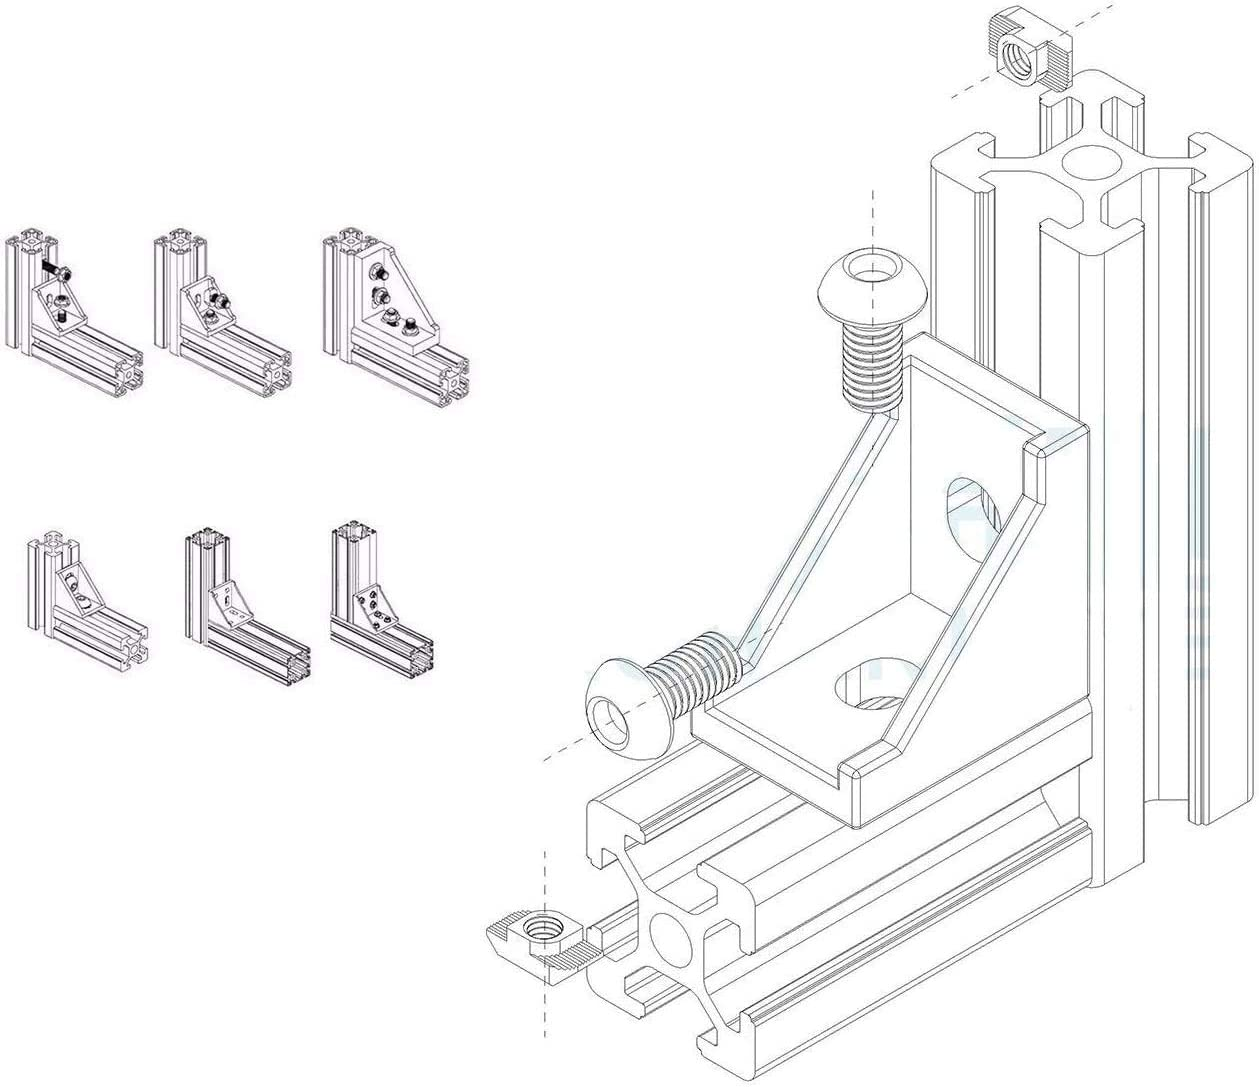 Socell 2020 Corner Bracket Right Angle 2020 Series 2 Hole Aluminum Brackets 2020 Series Aluminum Profile Connector Set for Aluminum Extrusion Profile with Slot 6mm 20pcs